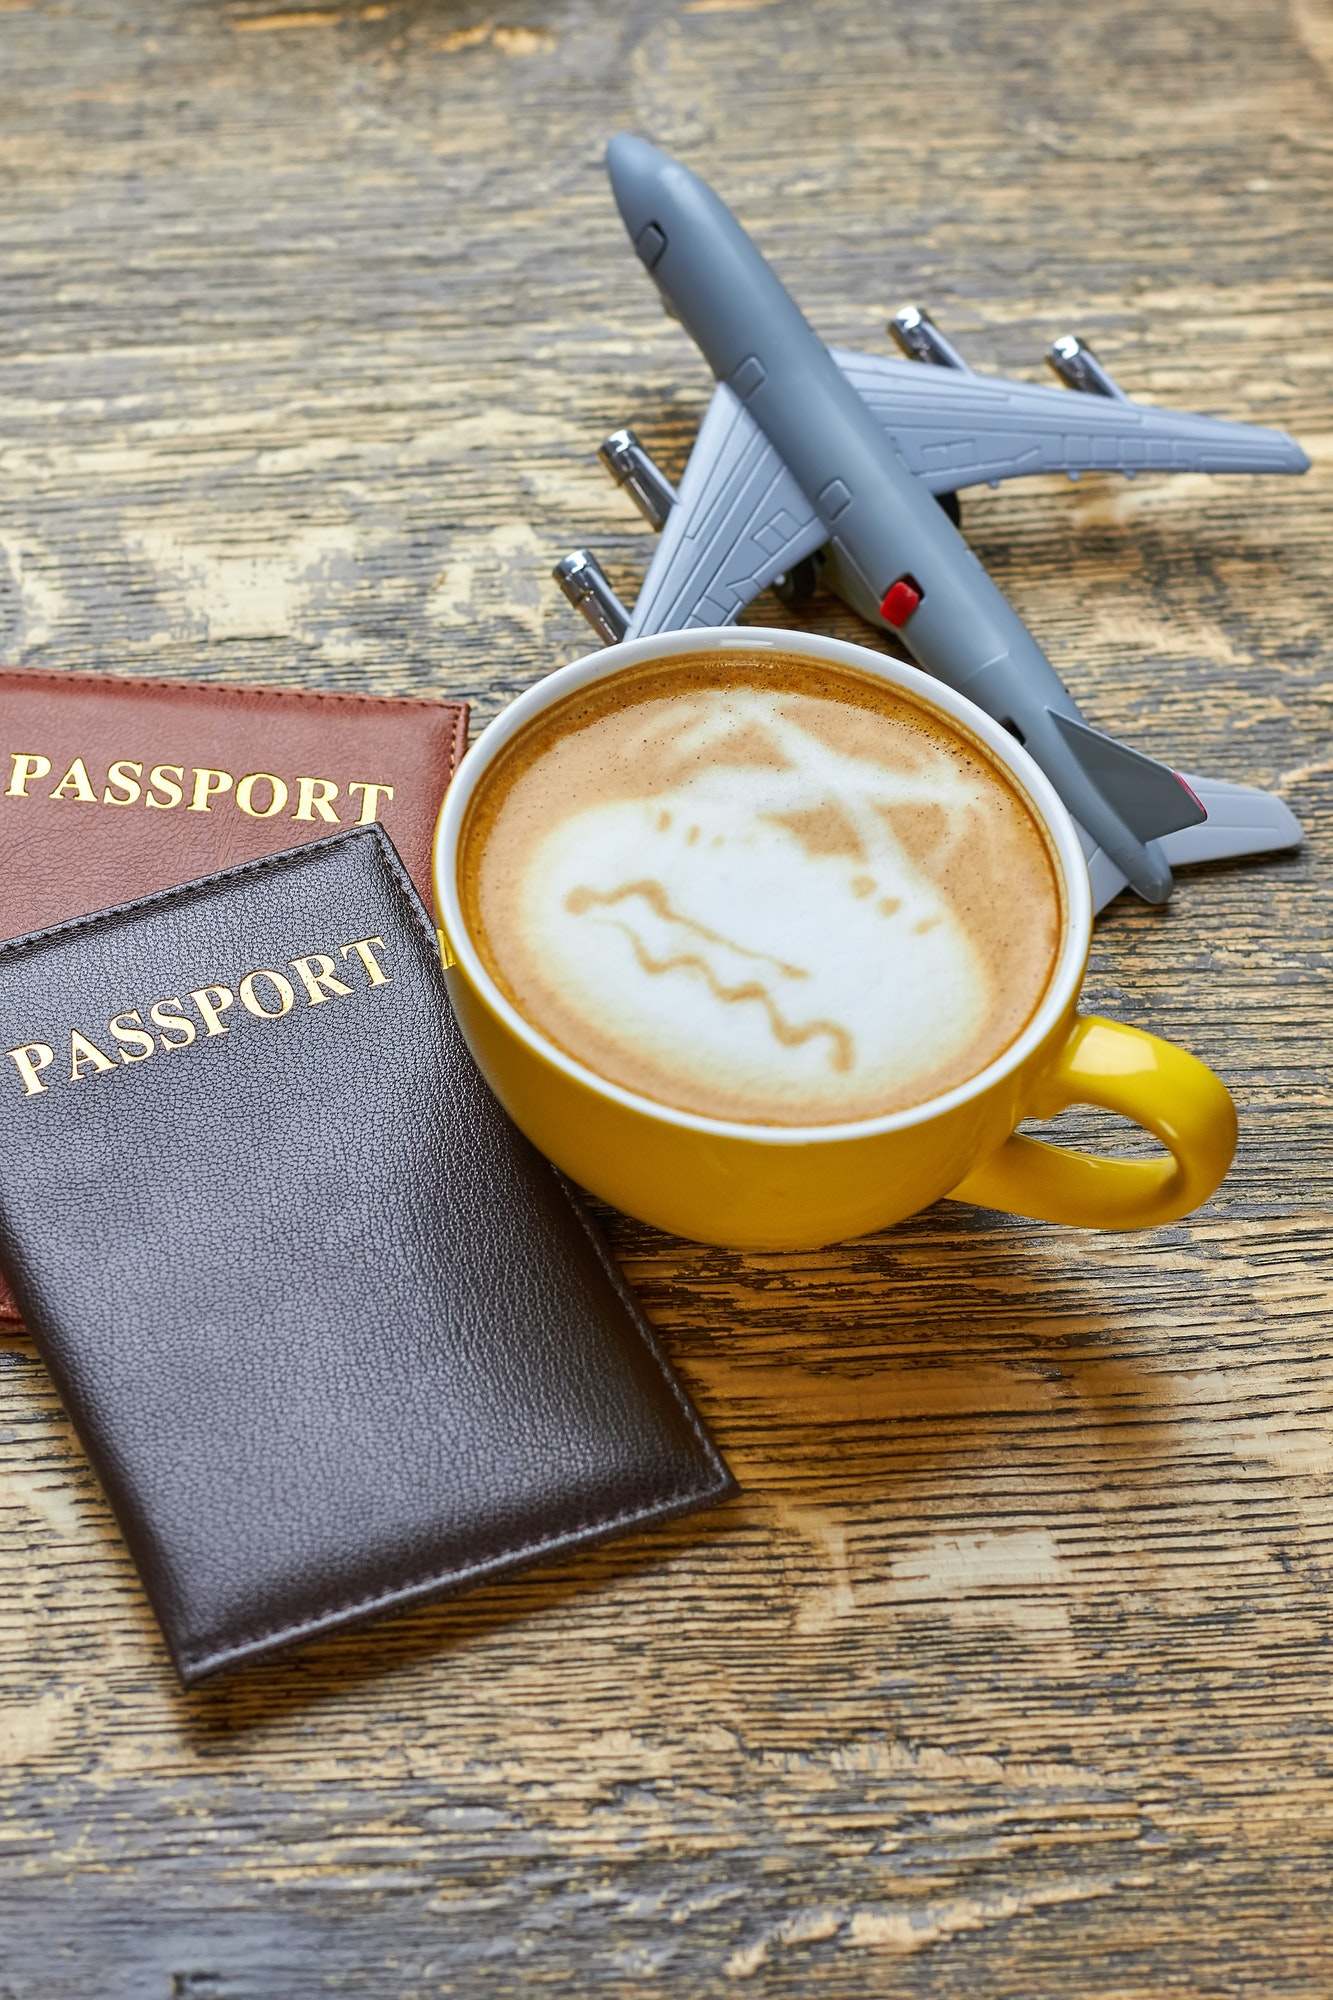 Coffee, passports and toy plane